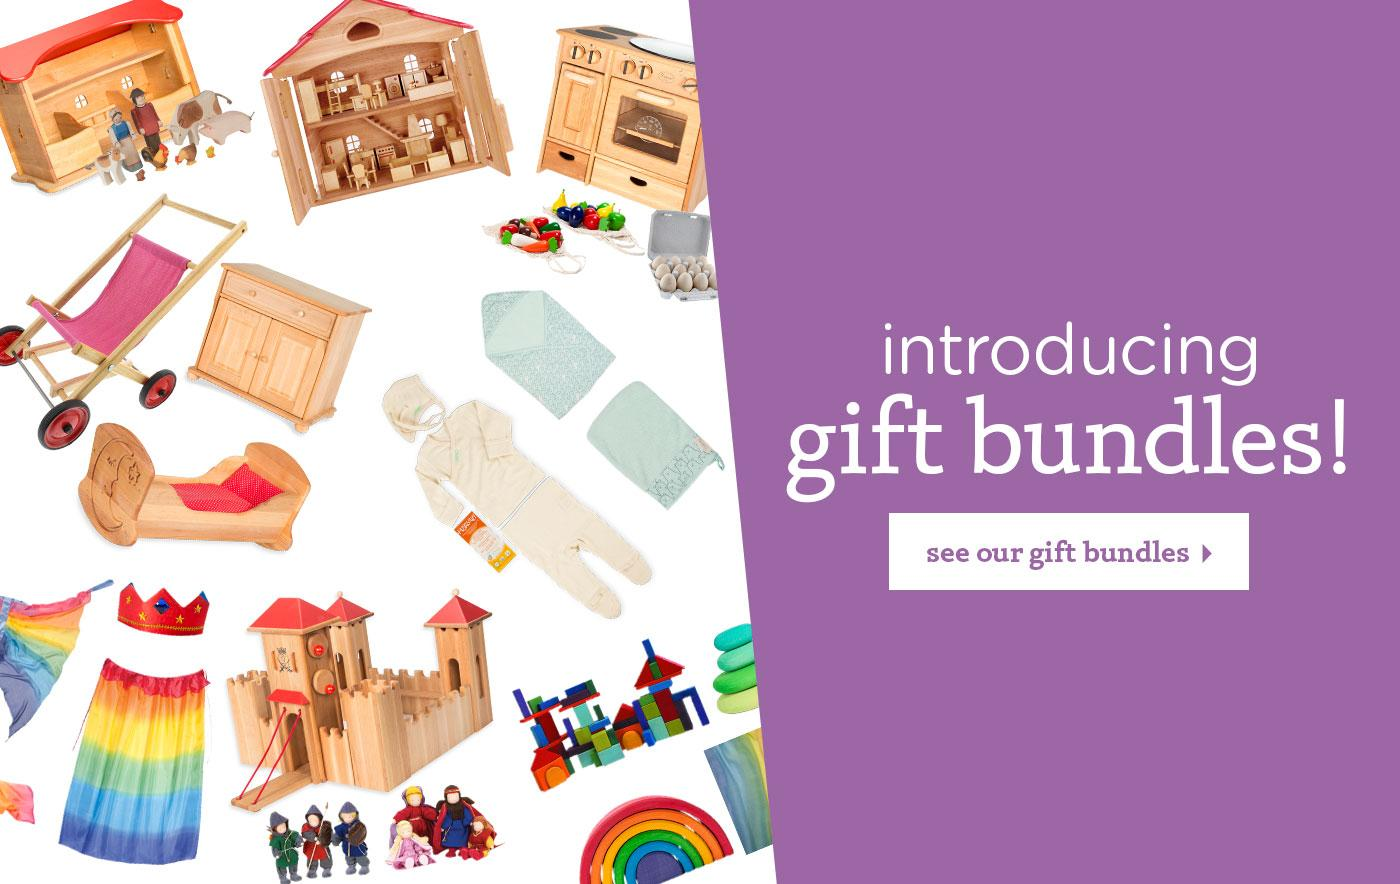 introducing gift bunbles!